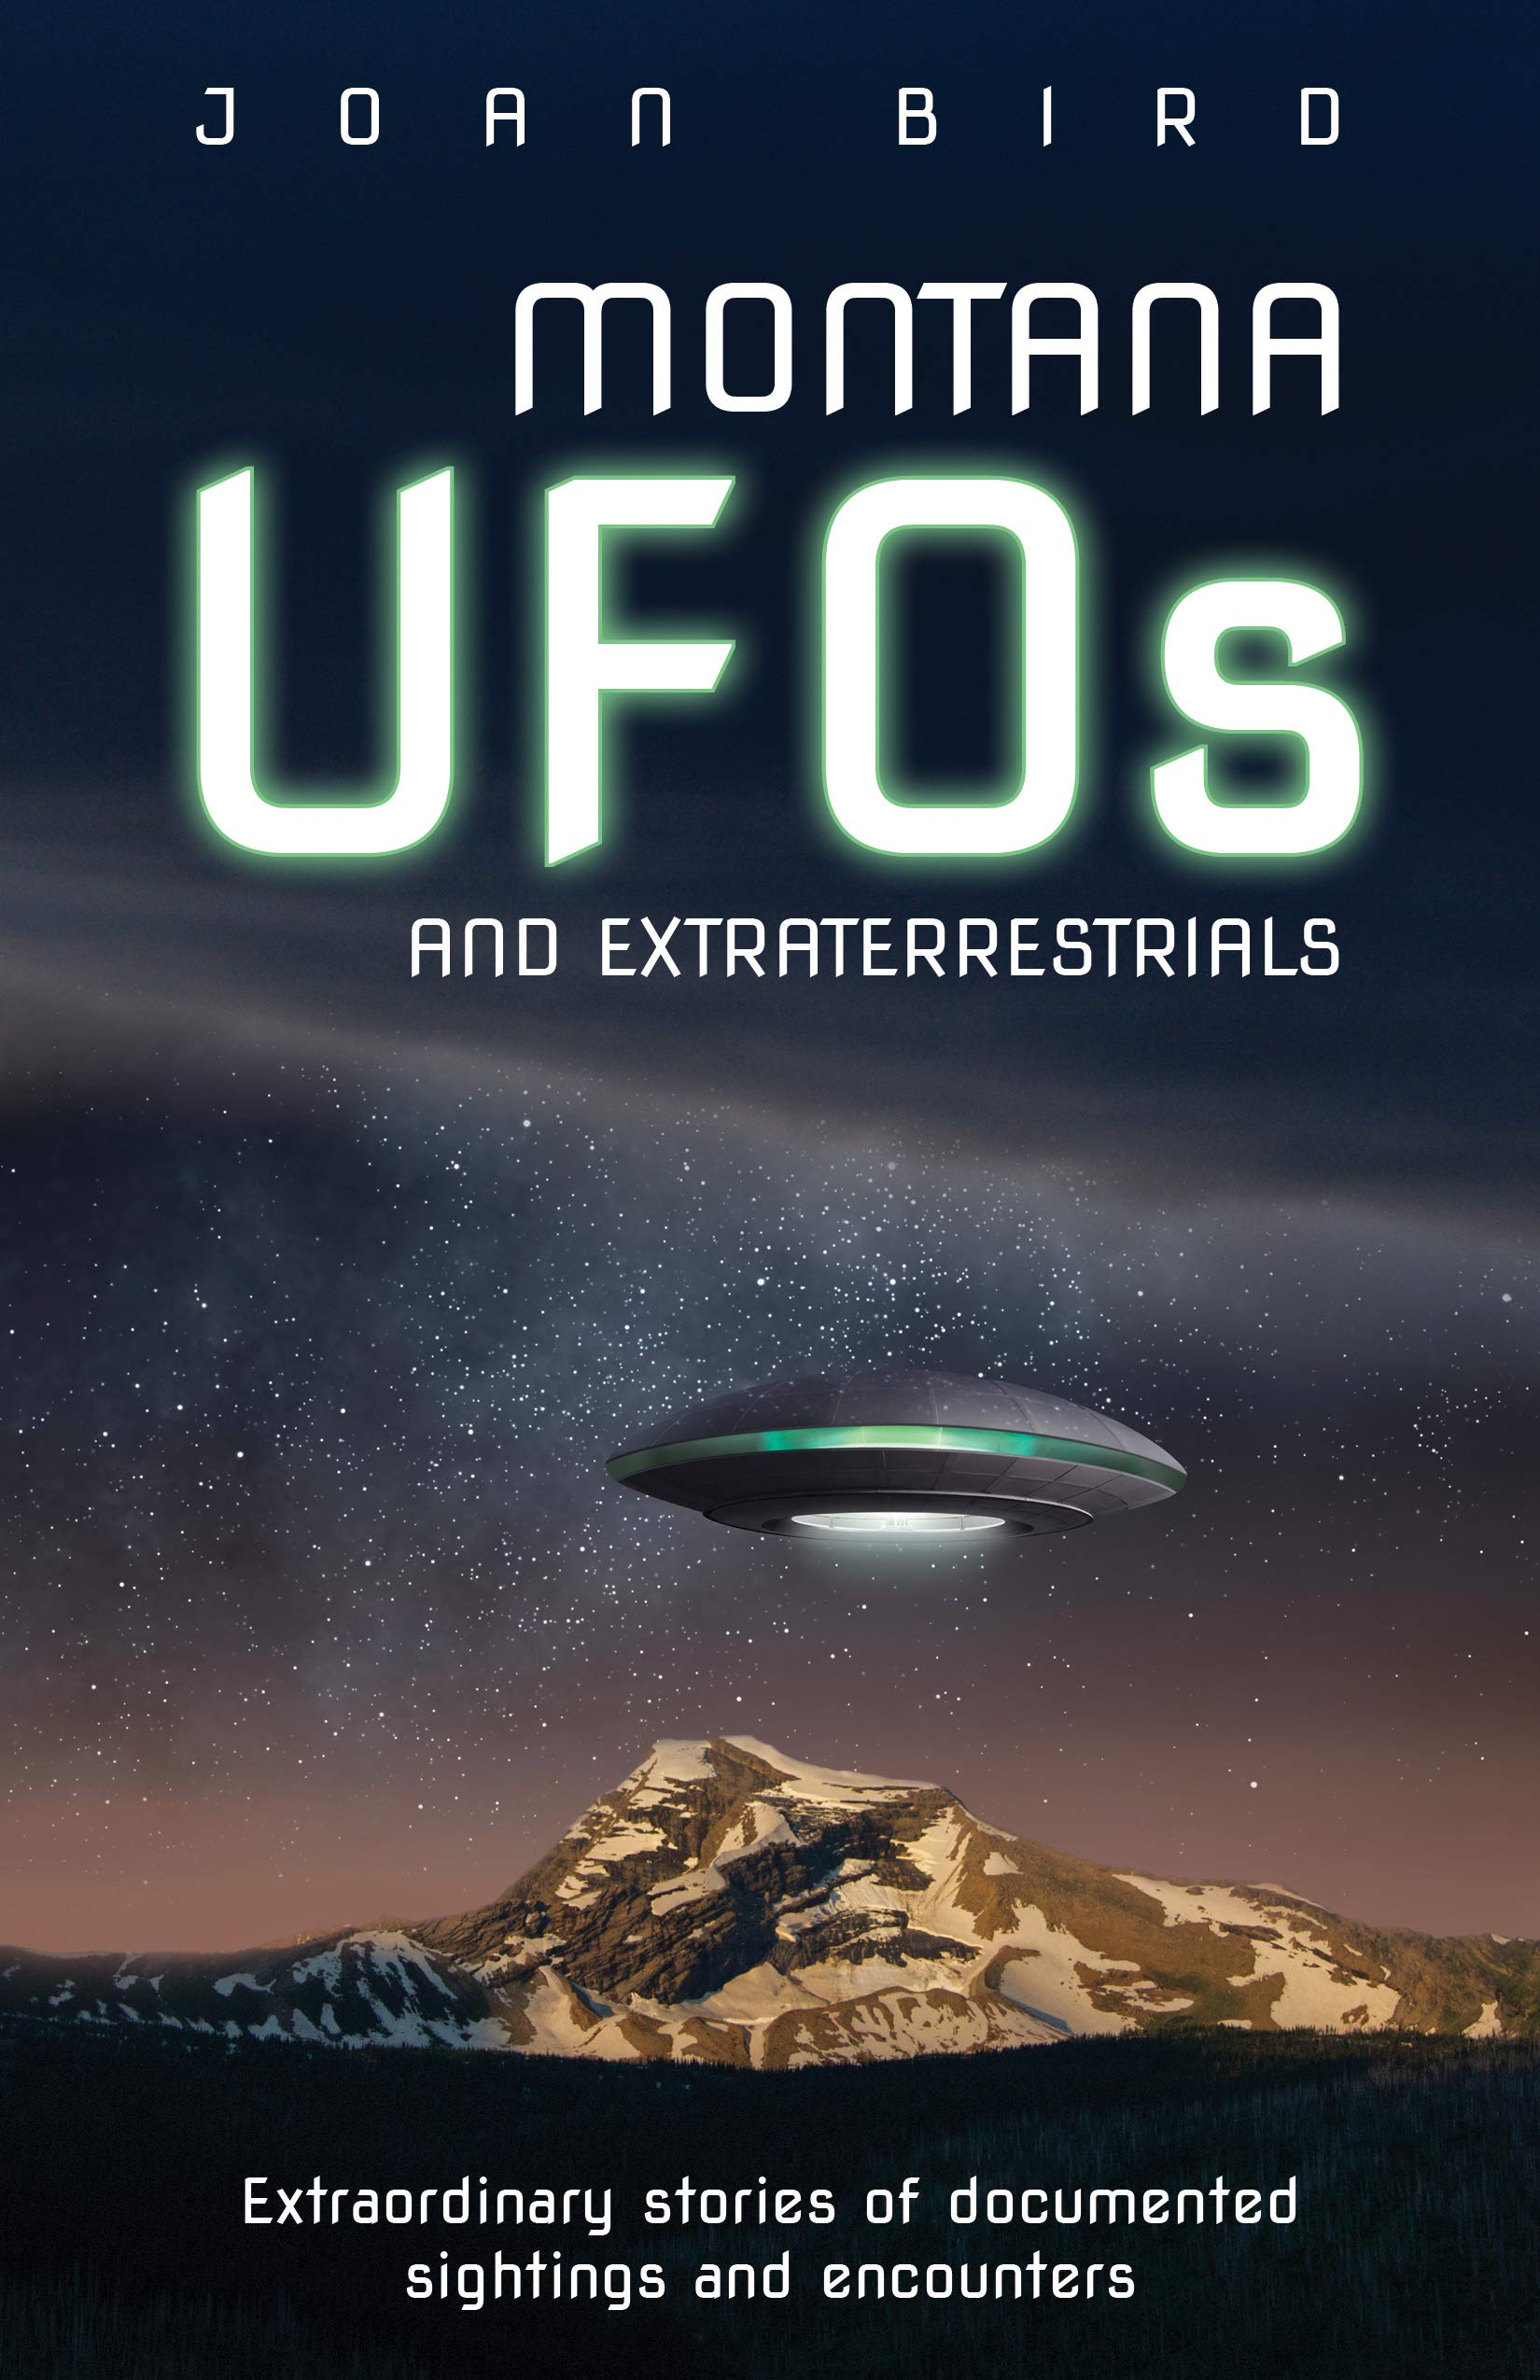 Amazon com: Montana UFOs and Extraterrestrials